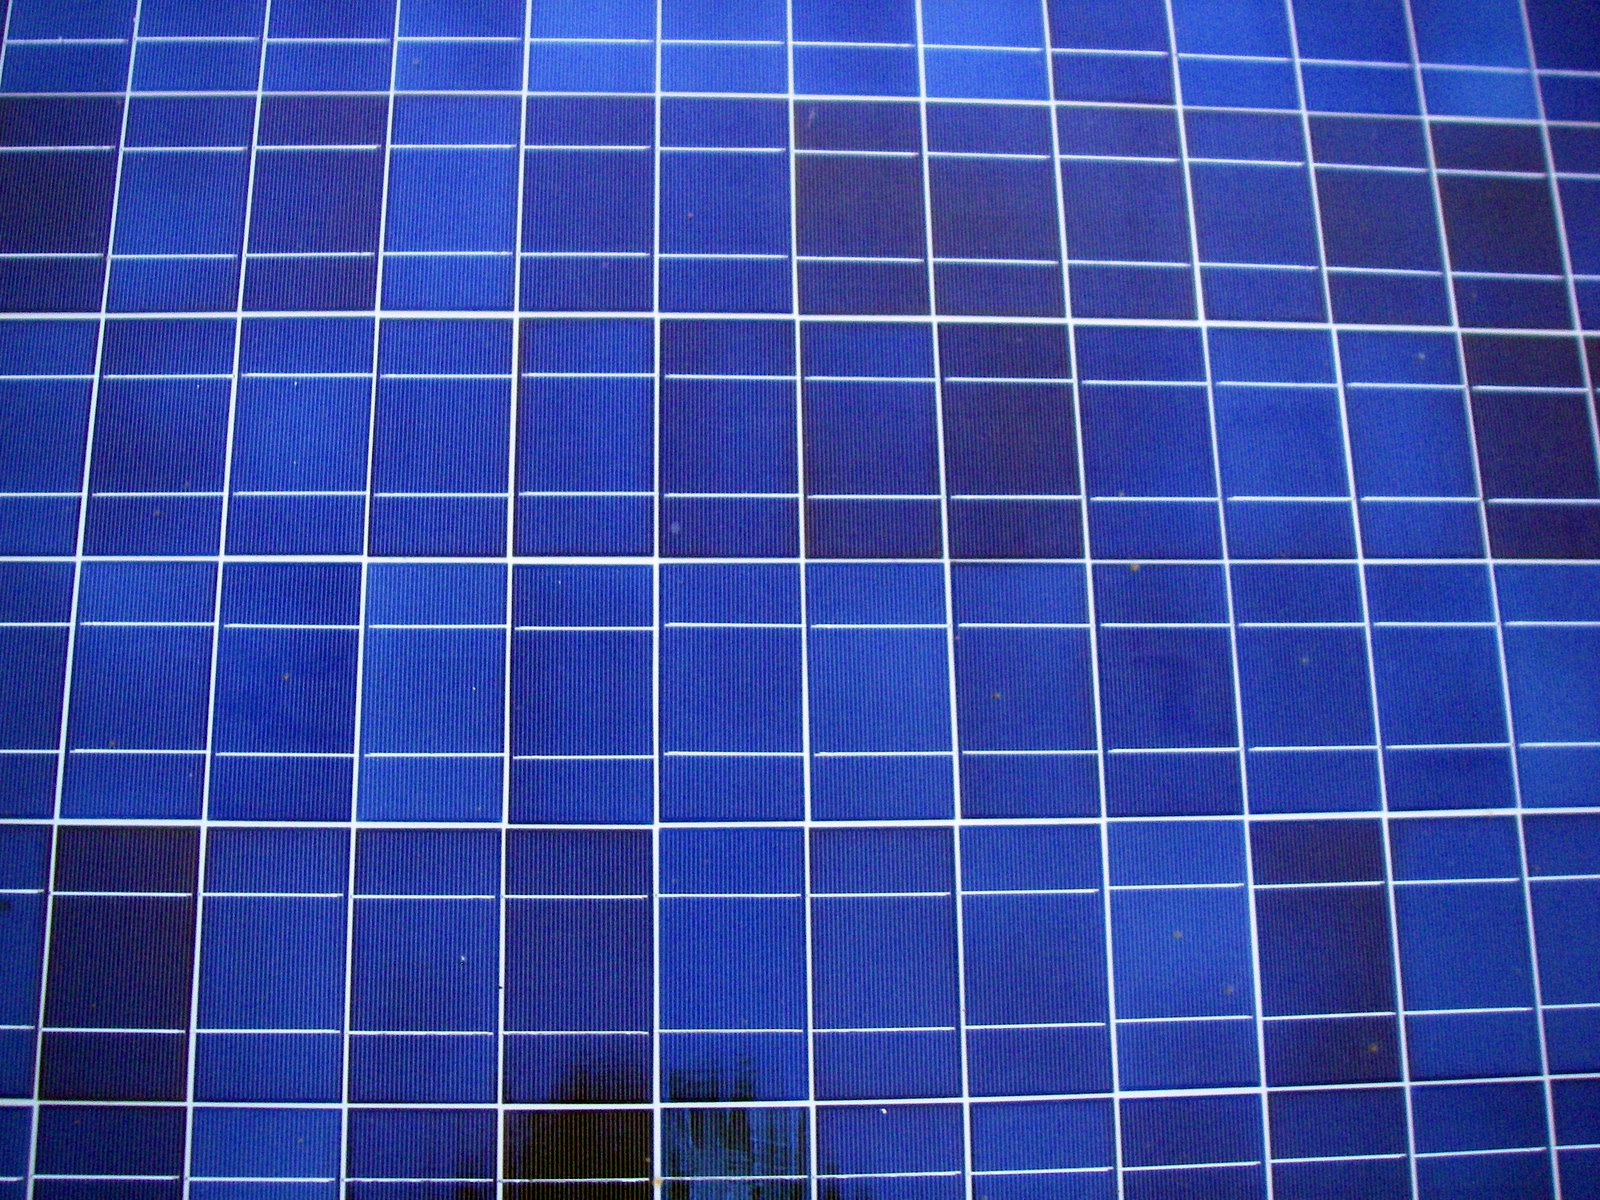 Photovoltaic cells up close